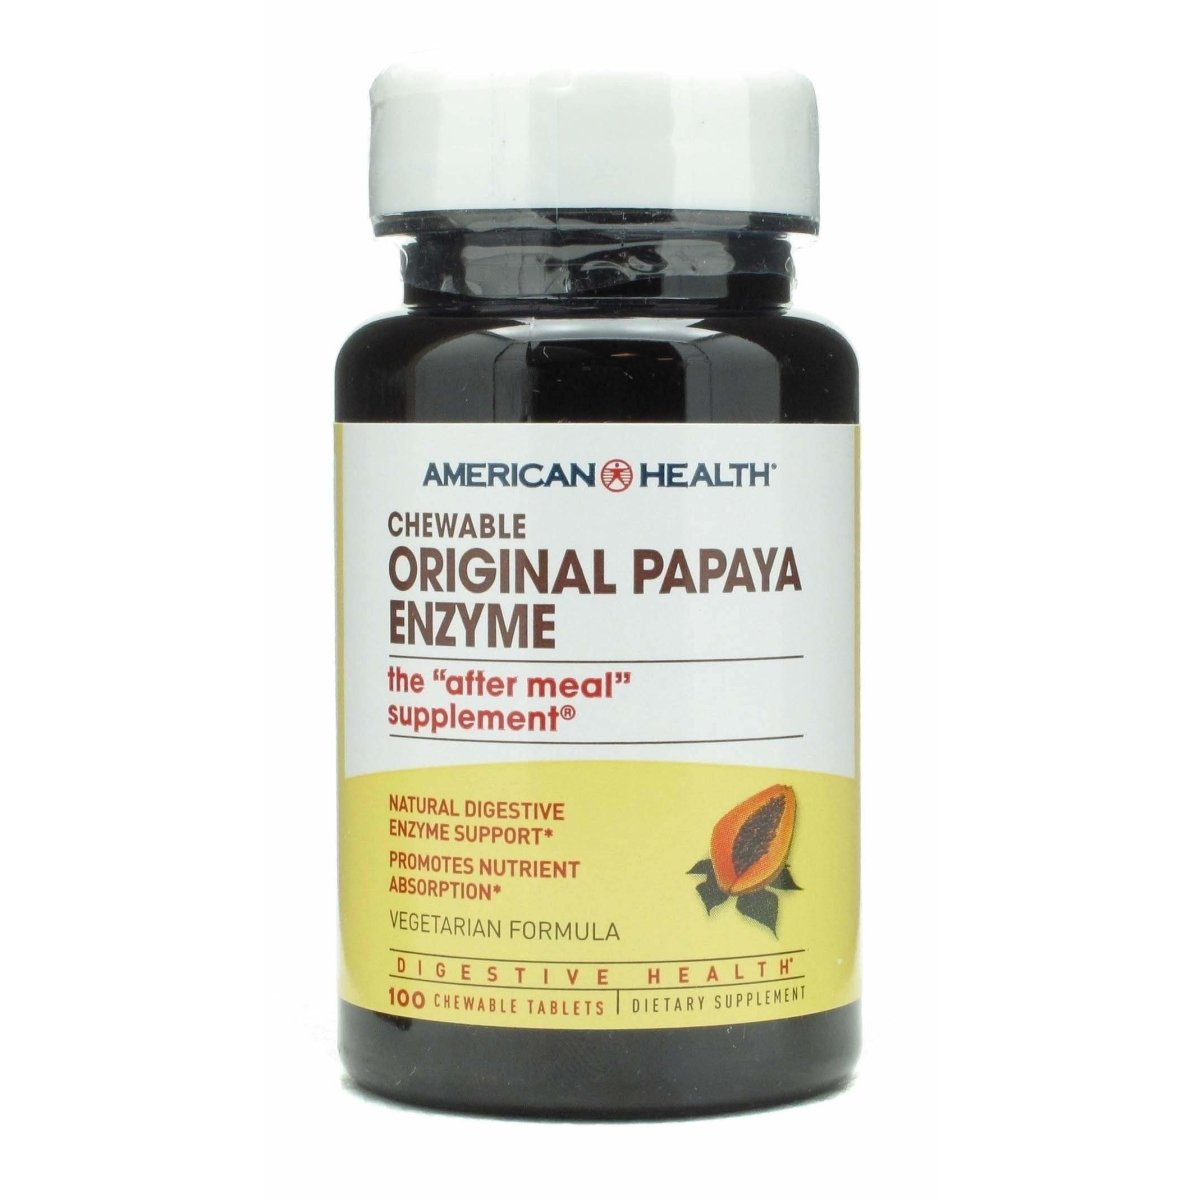 Chewable - Original Papaya Enzyme - 100 Tablets